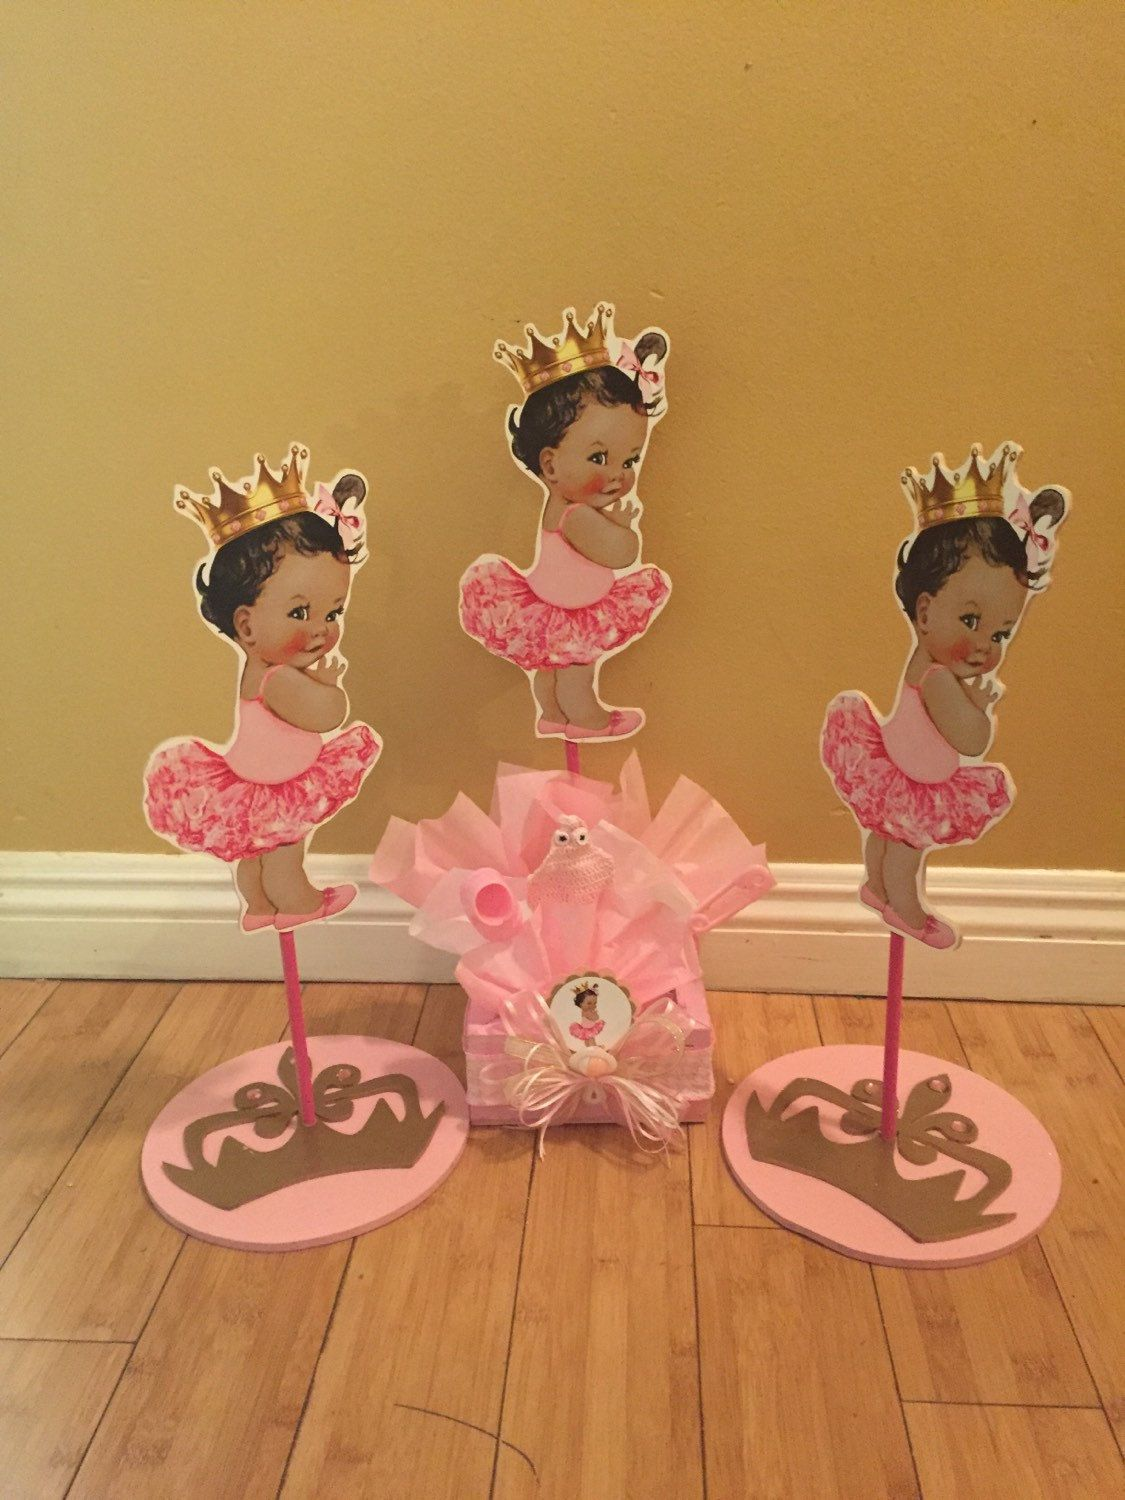 Listing Is For 1 Girls Baby Shower Box Centerpiece Or Round Crown Base Piece Available